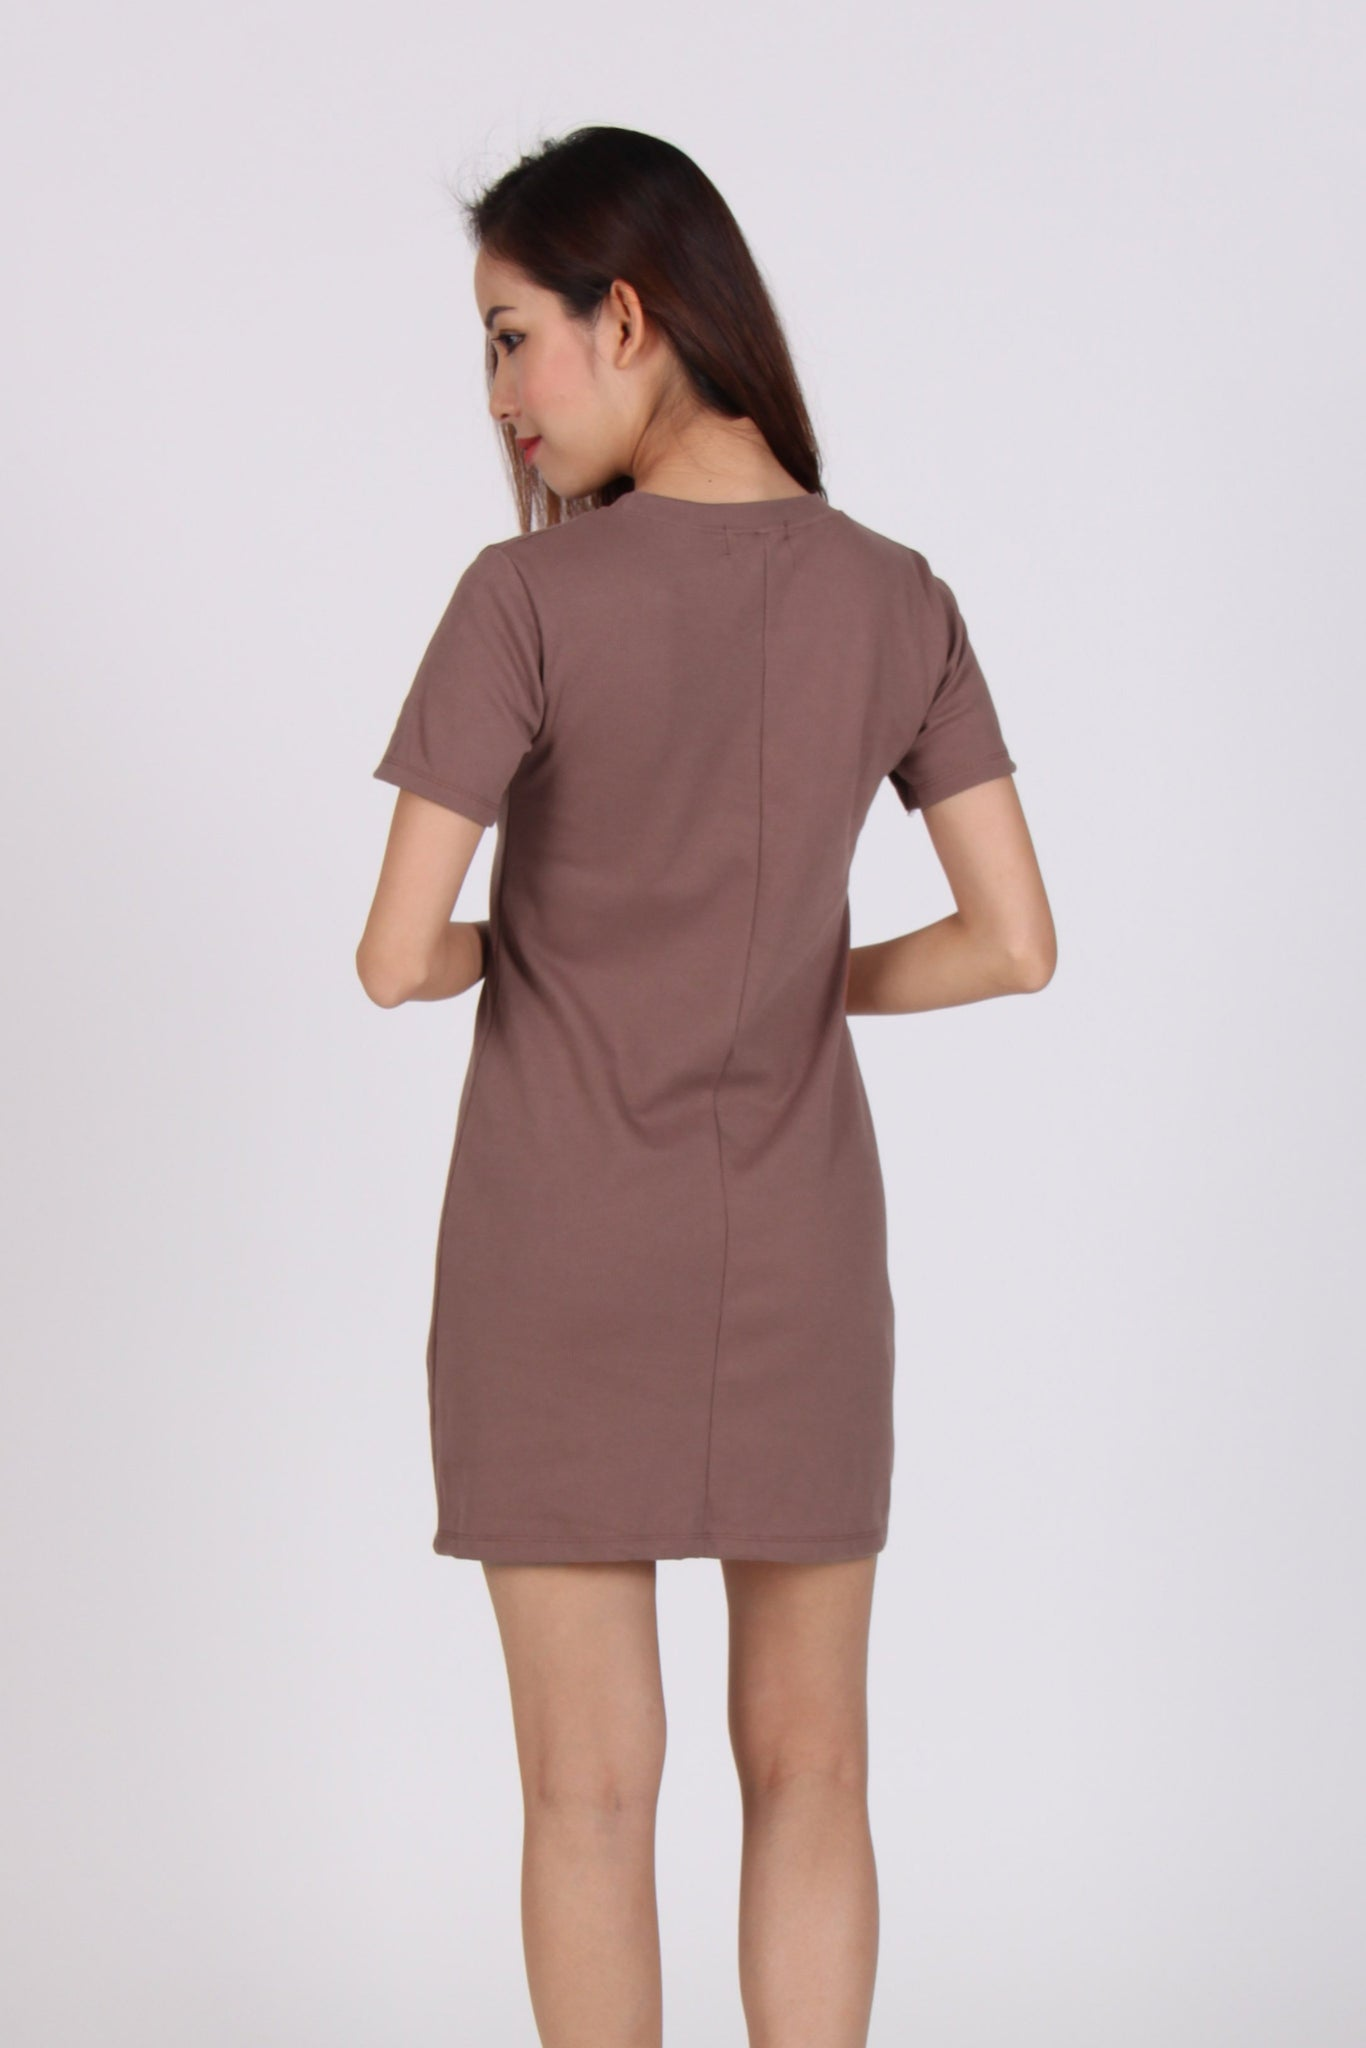 Basic Comfy Tee Dress in Brown